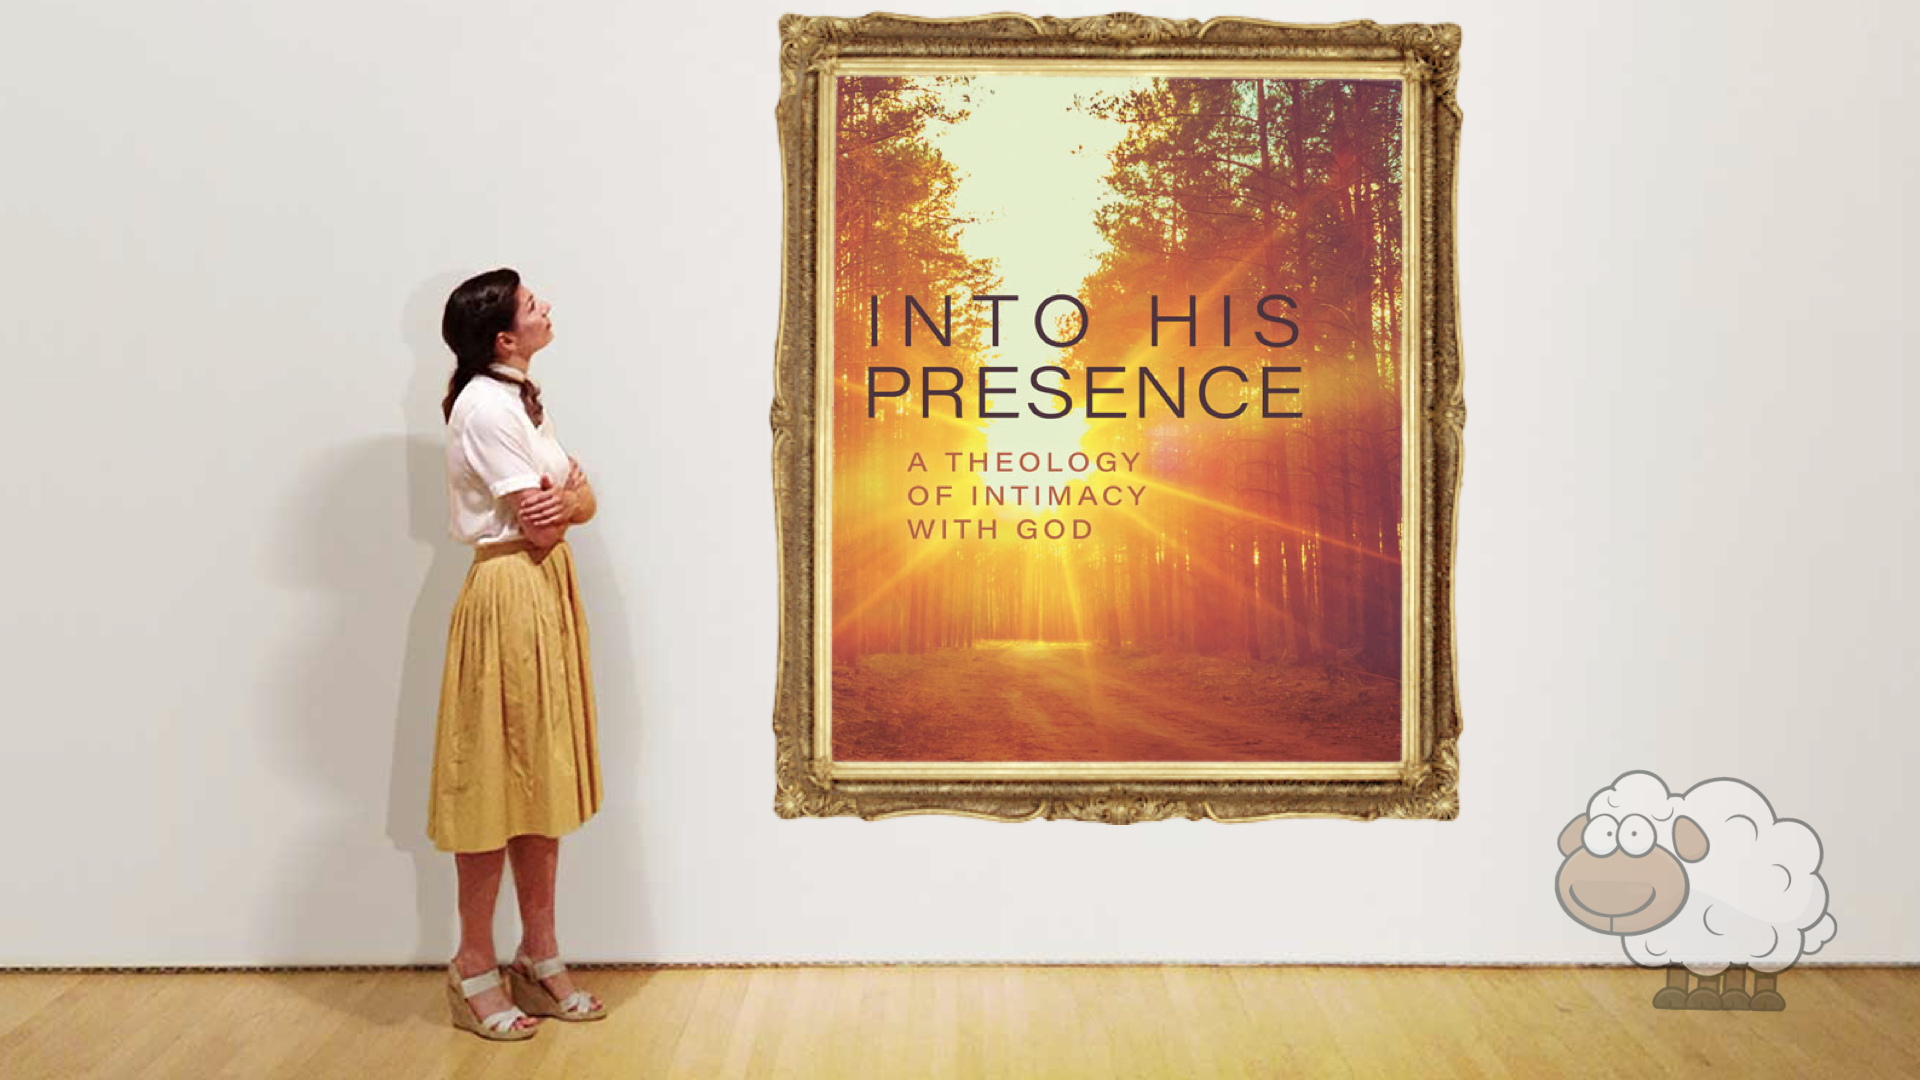 Tim L. Anderson. Into His Presence: A Theology of Intimacy with God.   Grand Rapids, MI: Kregel Academic, 2019, 280 pp. $29.69.